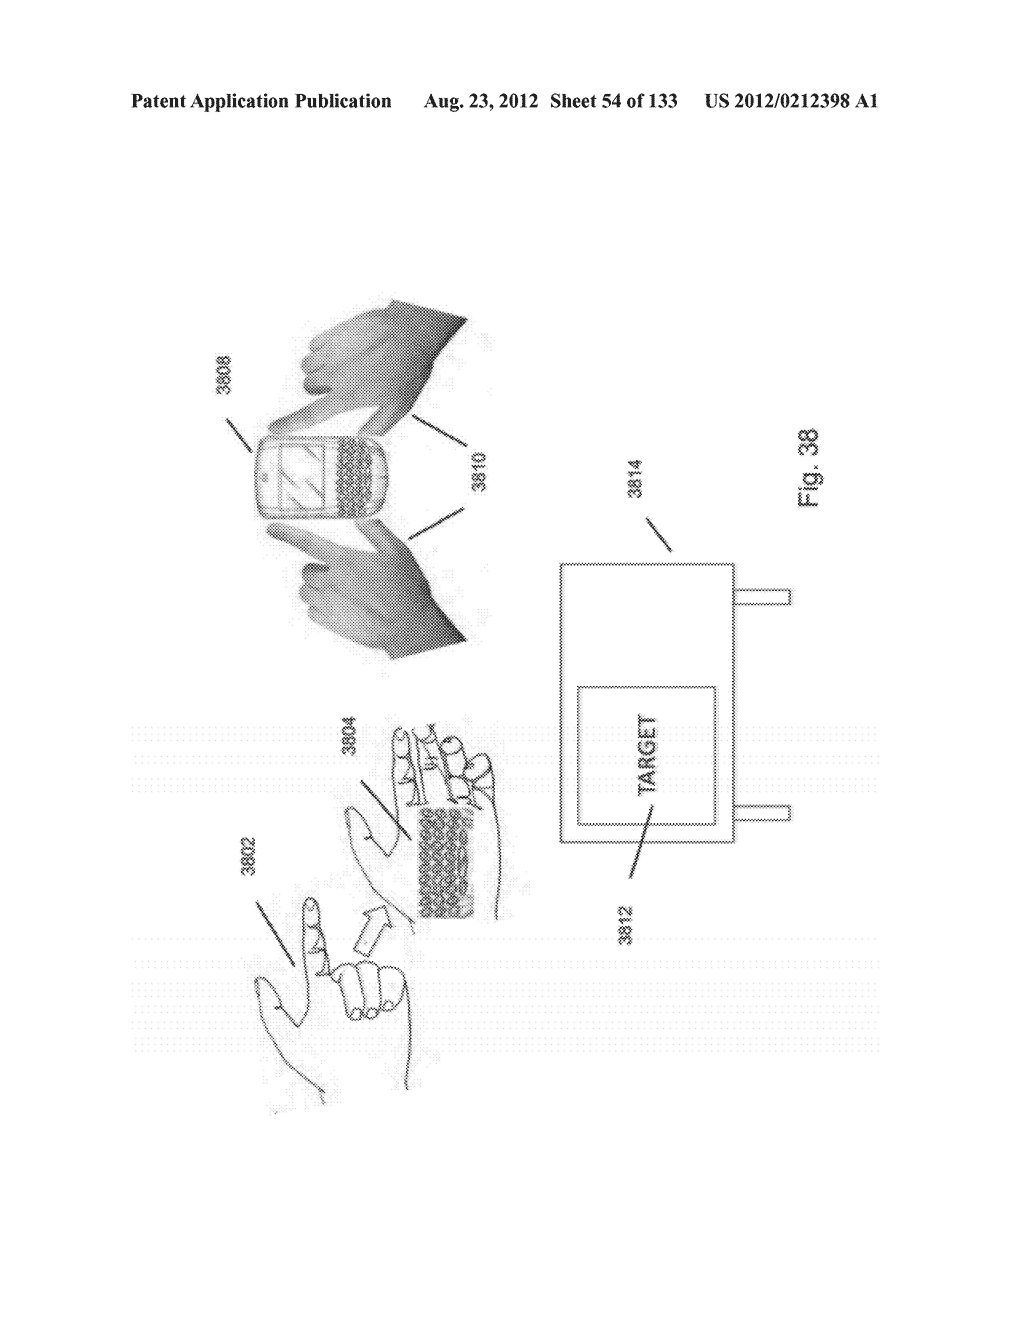 SEE-THROUGH NEAR-EYE DISPLAY GLASSES INCLUDING A PARTIALLY REFLECTIVE,     PARTIALLY TRANSMITTING OPTICAL ELEMENT - diagram, schematic, and image 55